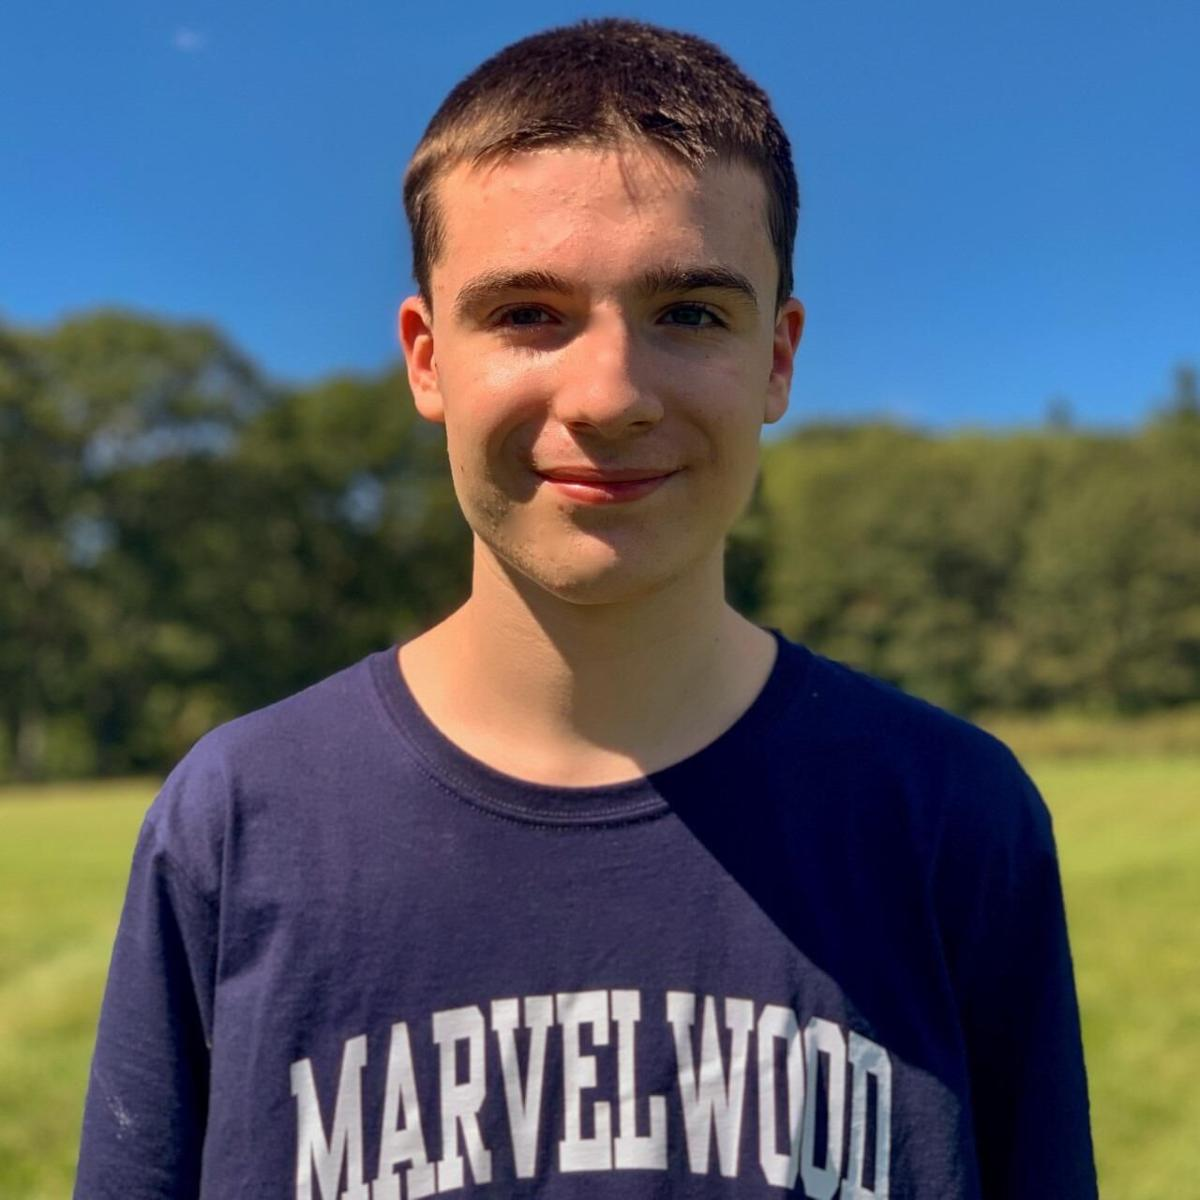 Kent student receives honors by Marvelwood School